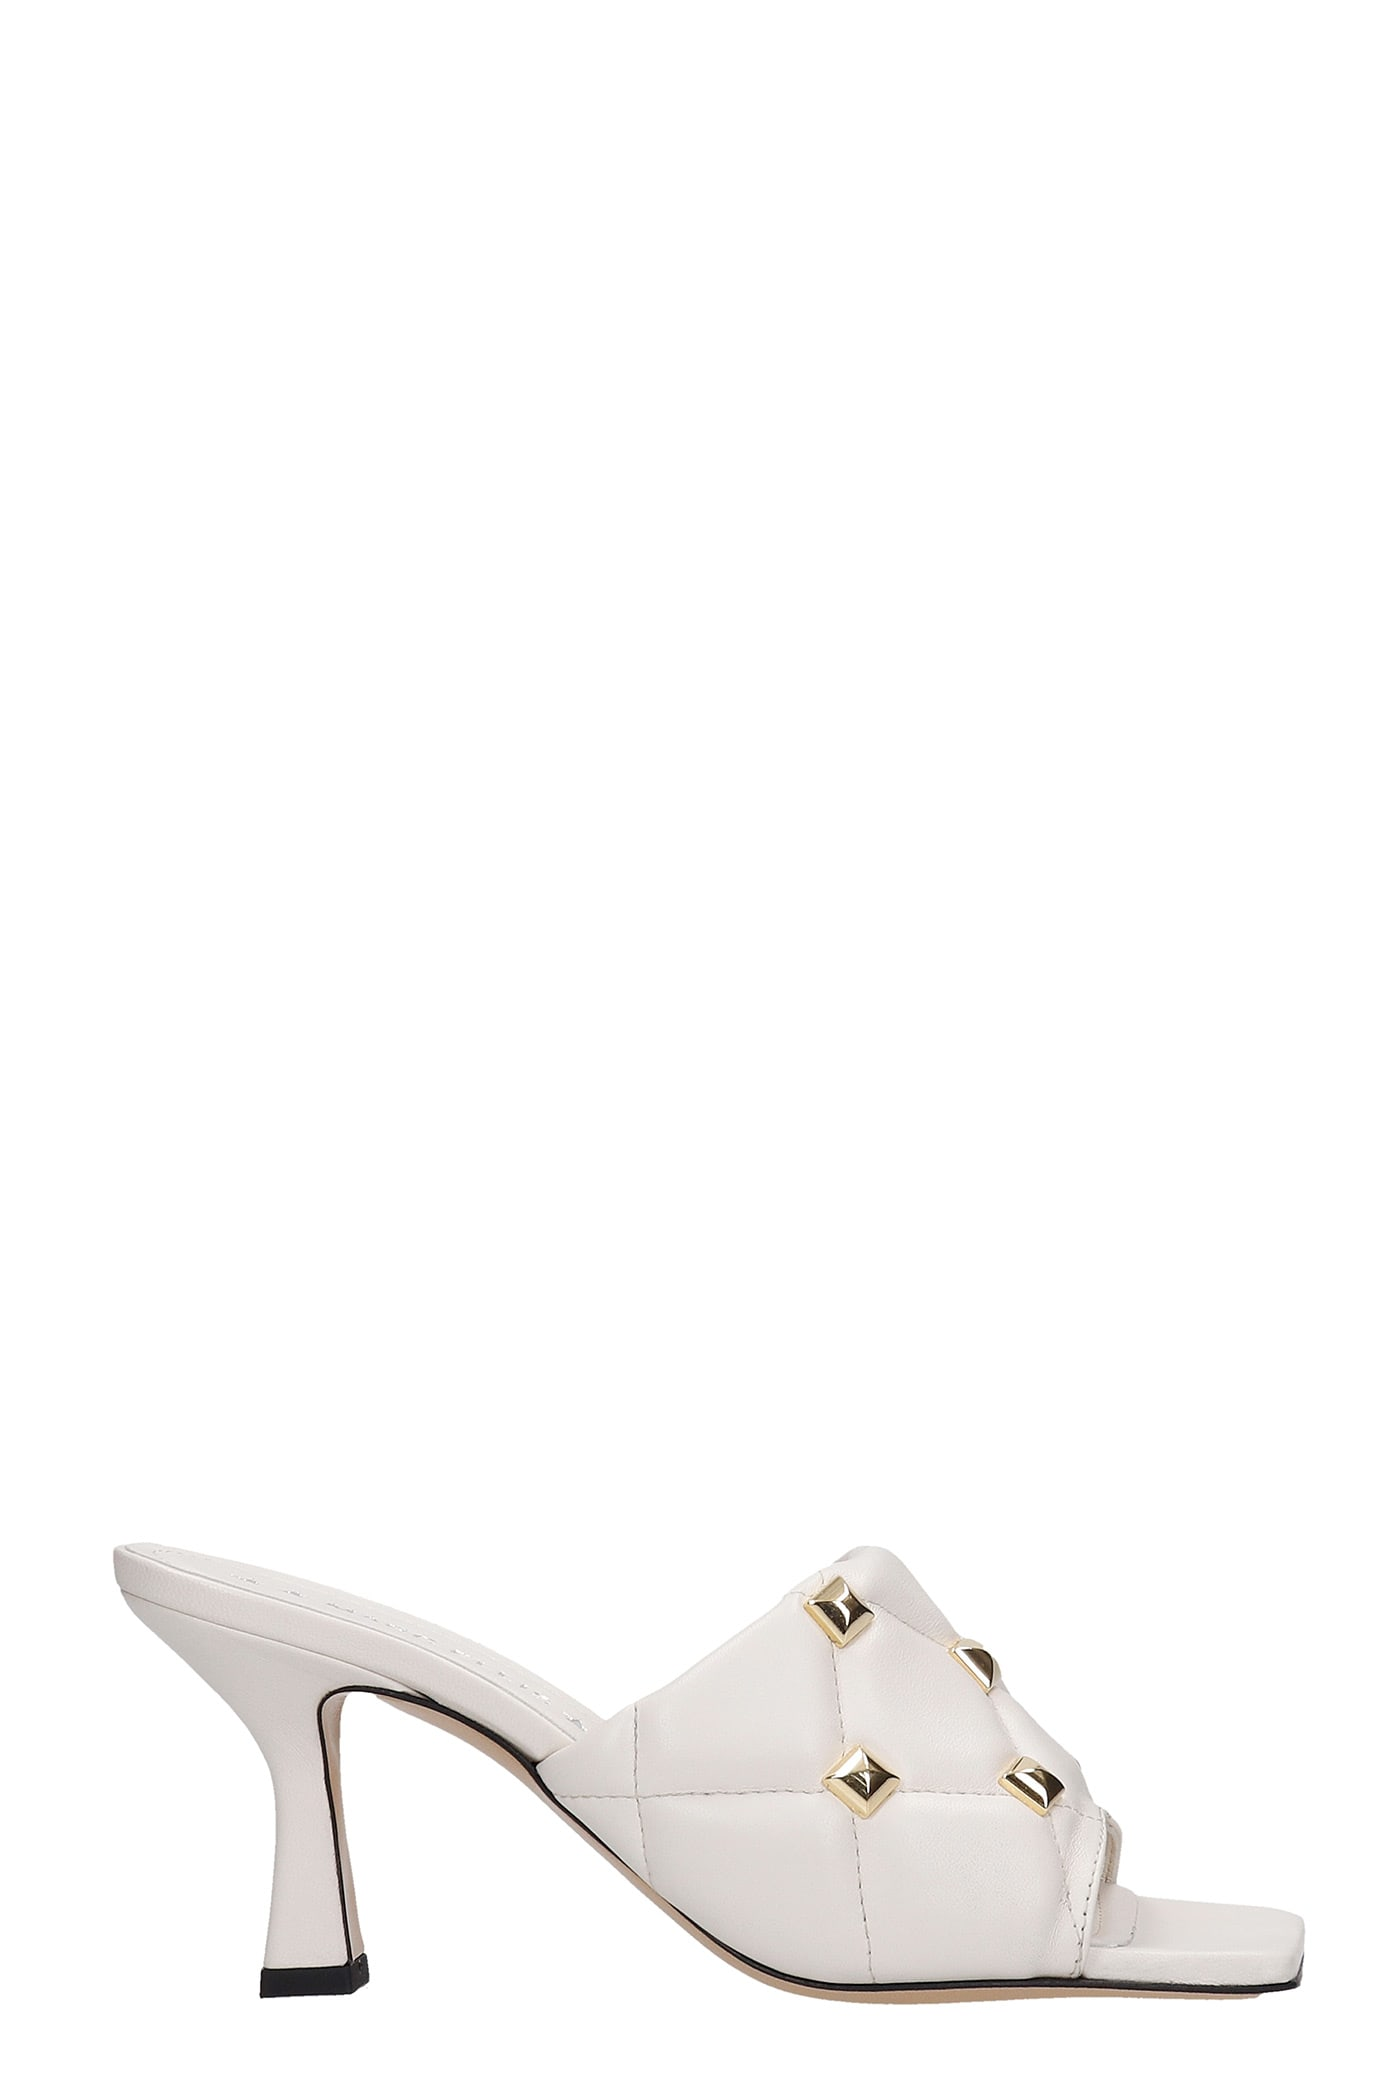 Alina Sandals In Beige Leather